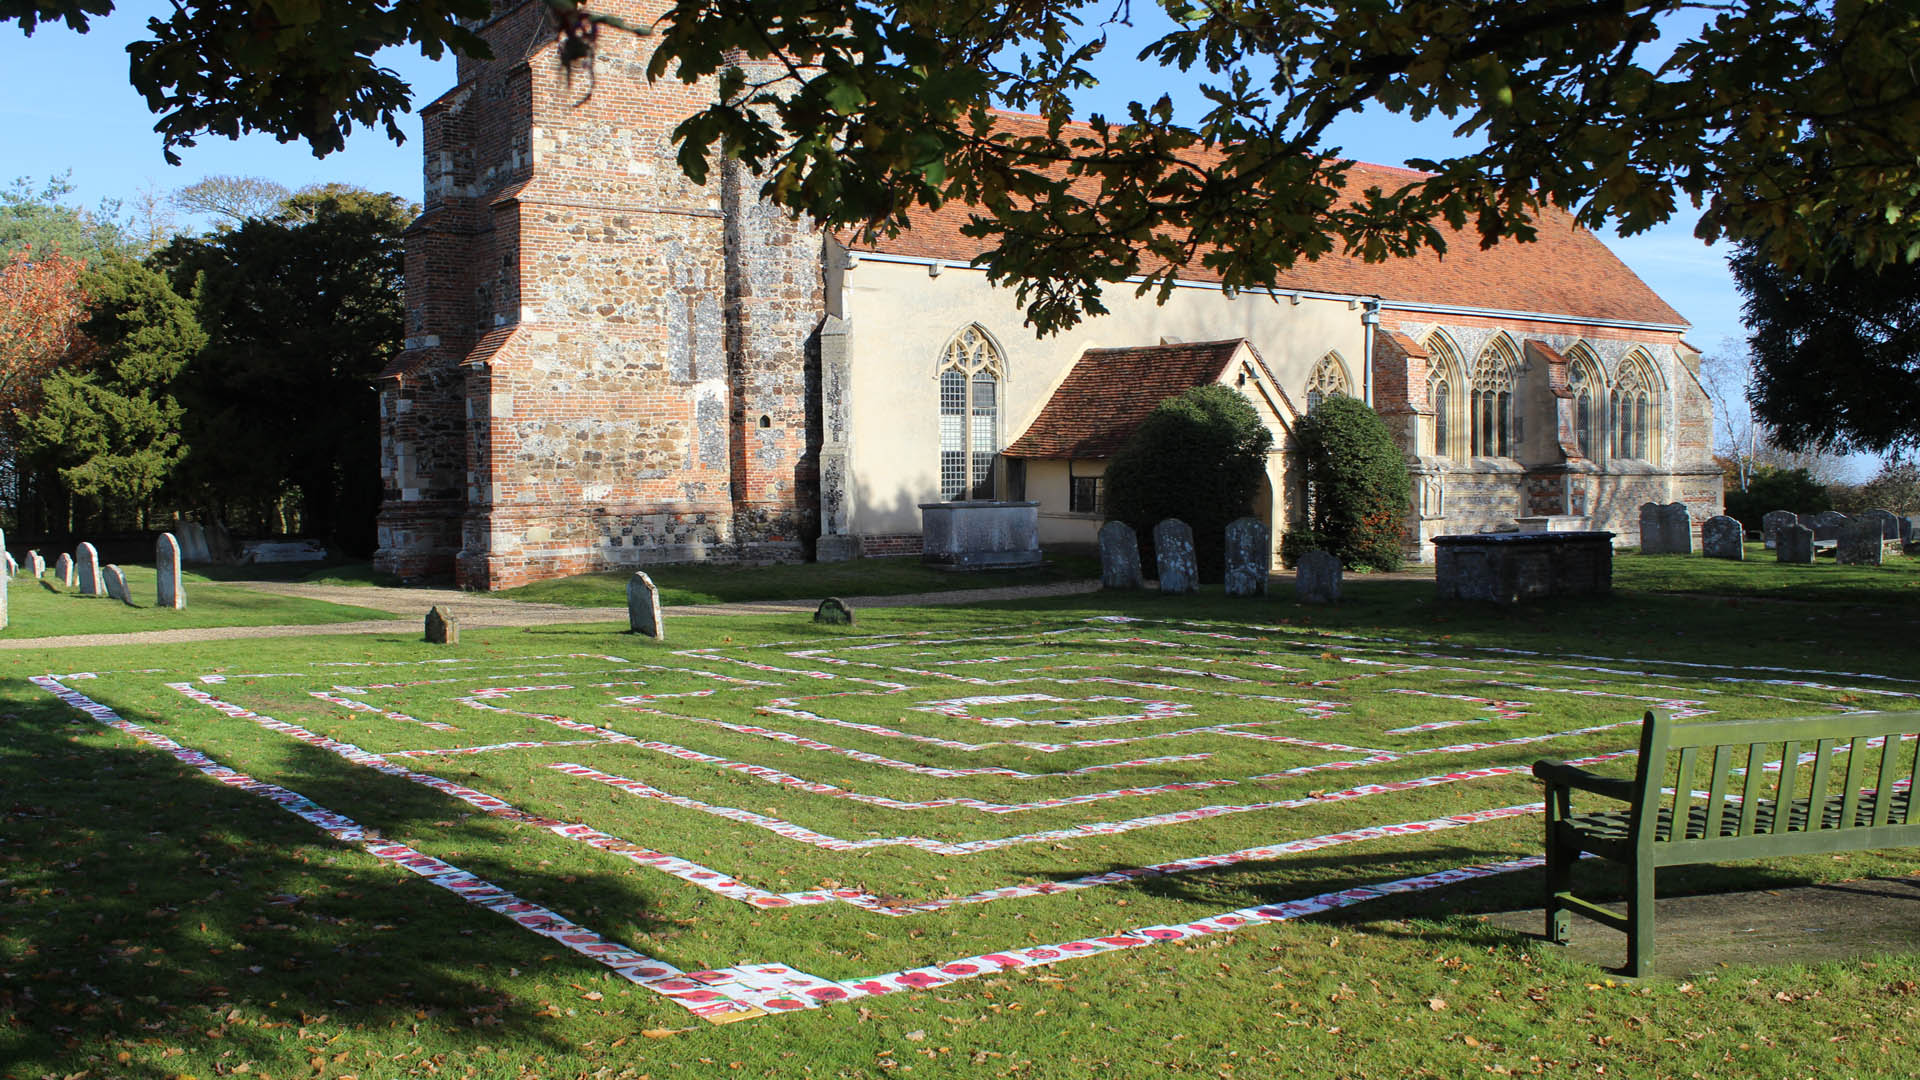 Lawford Church Commemorates 100 Year Anniversary